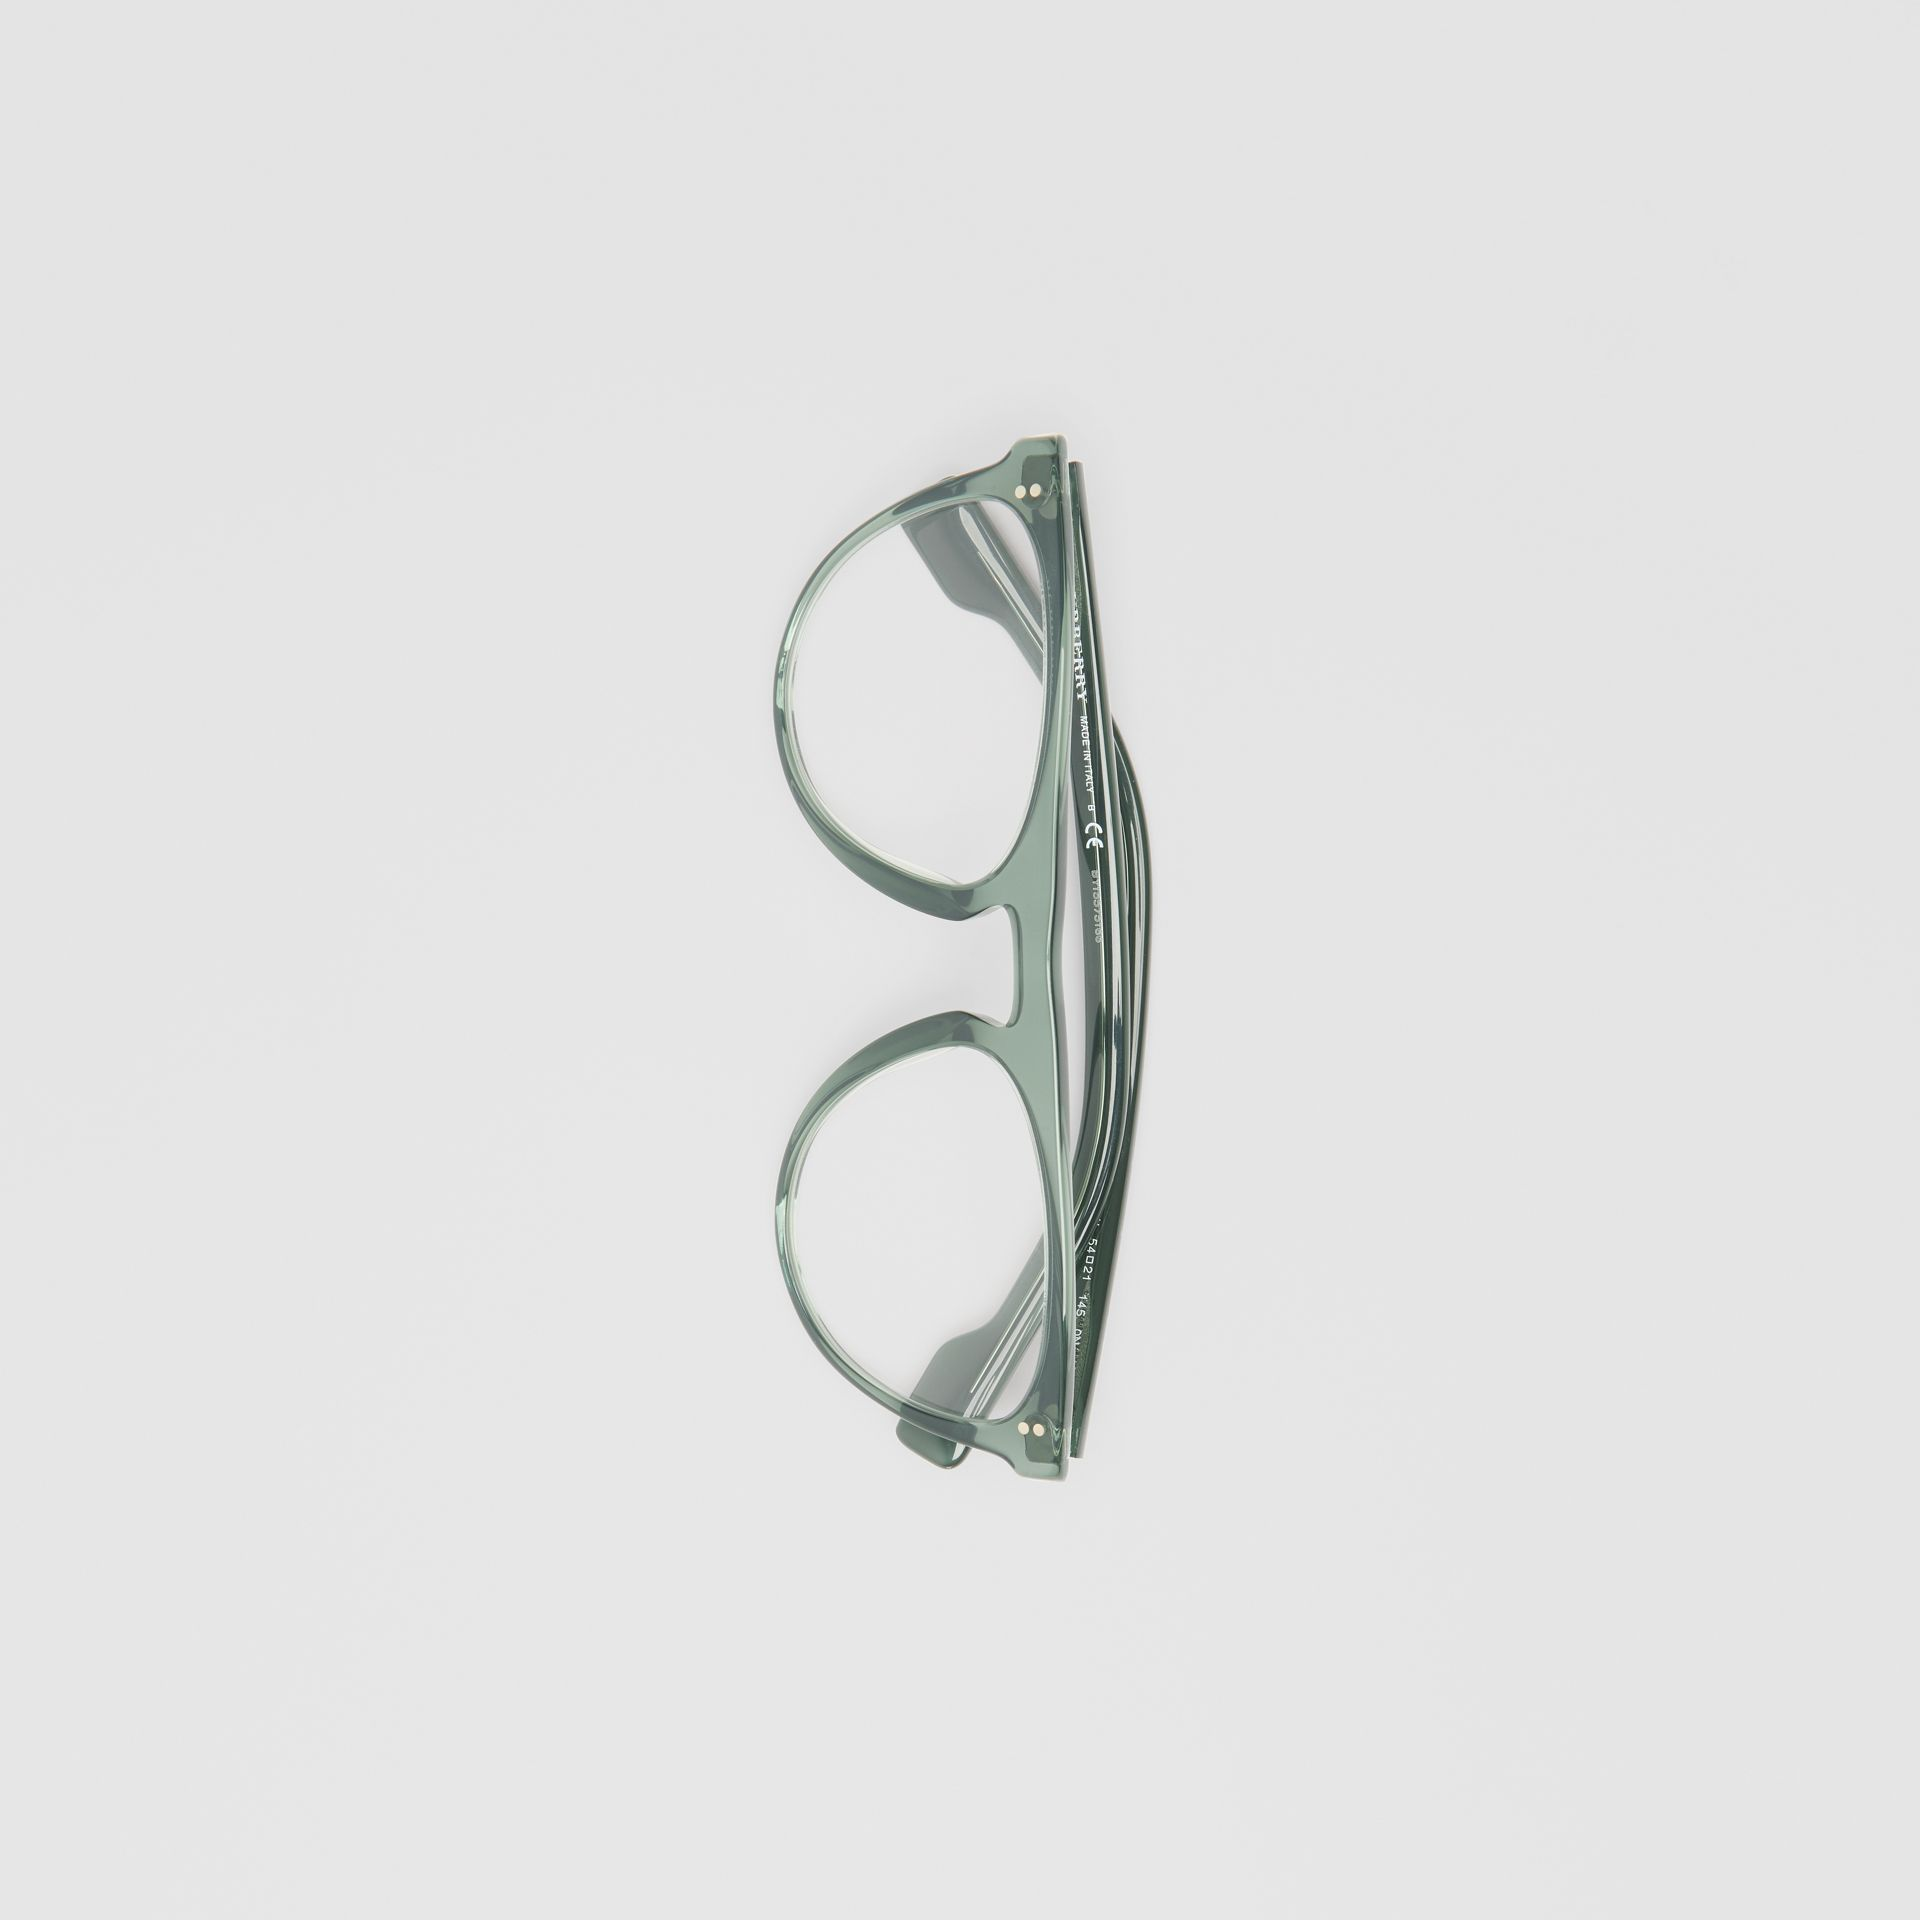 Keyhole D-shaped Optical Frames in Green - Men | Burberry - gallery image 3